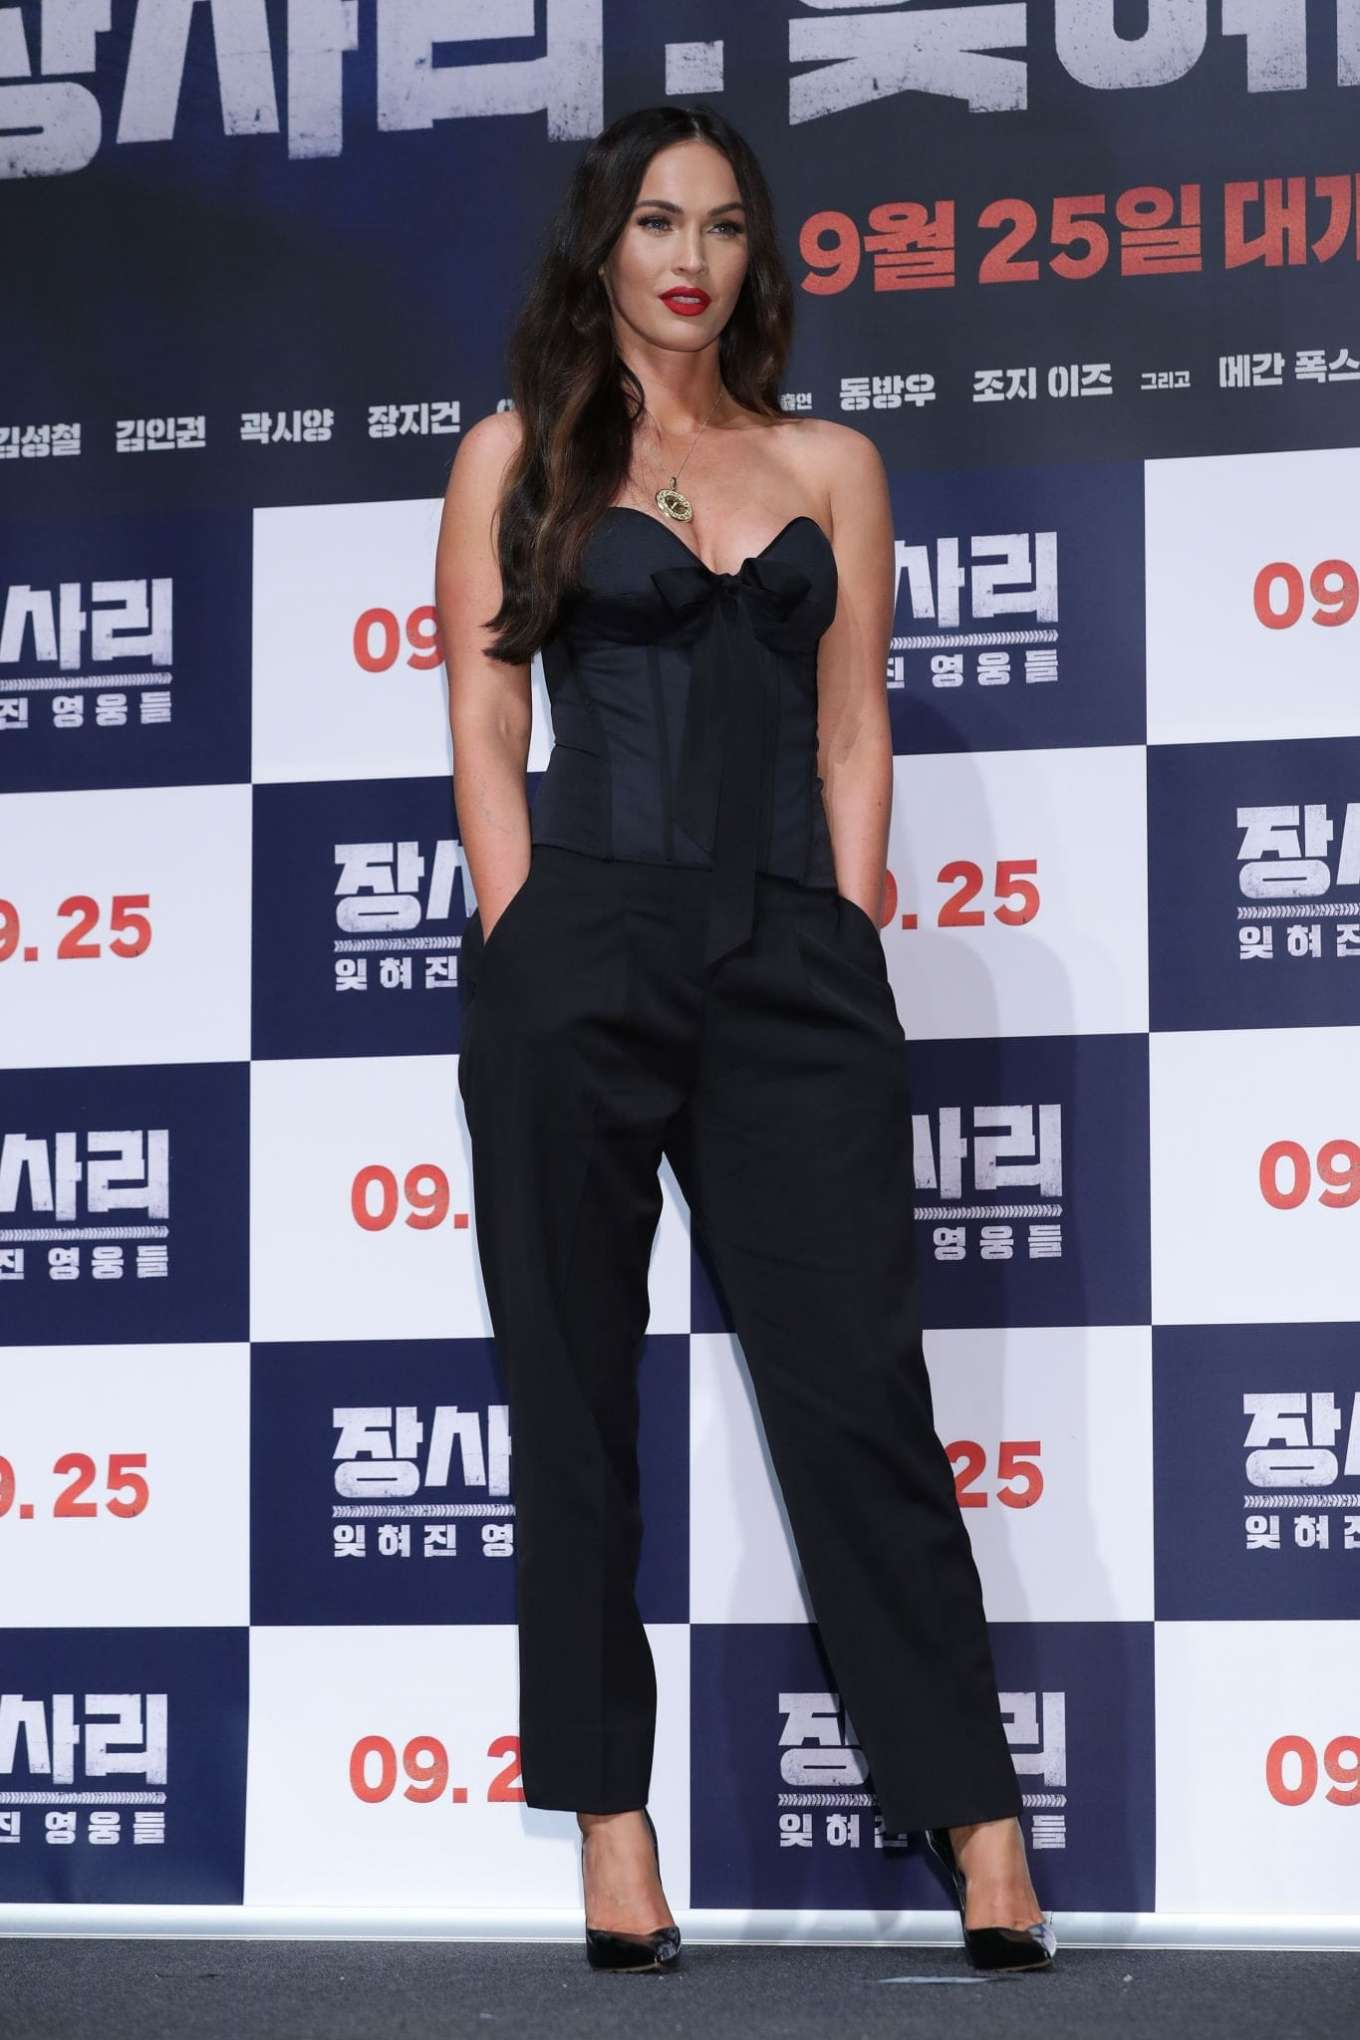 Megan Fox 2019 : Megan Fox – Battle Of Jangsari press conference in Seoul – South Korea-22